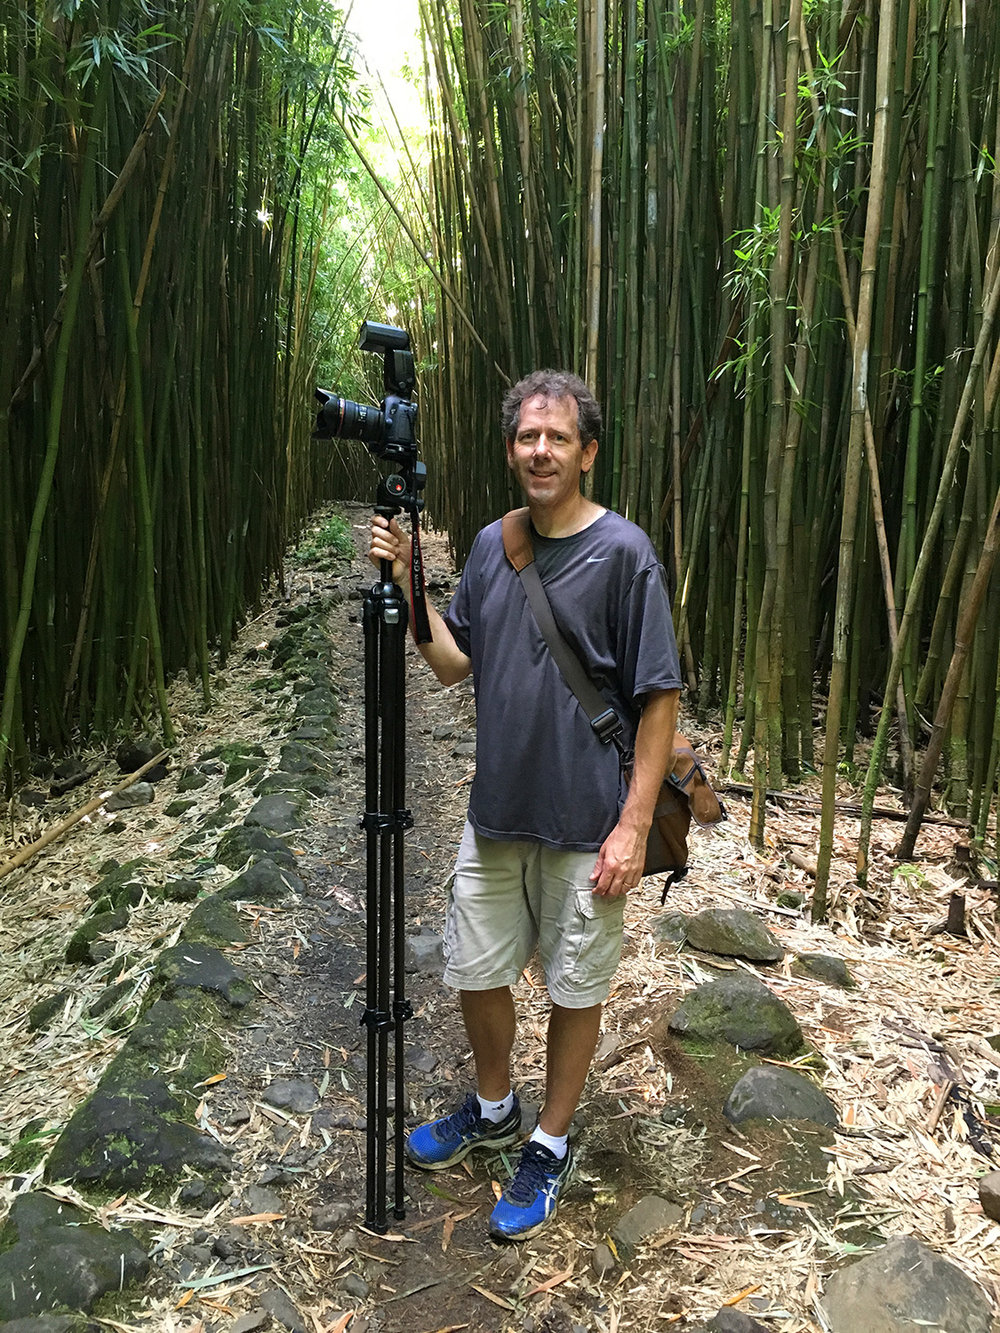 Kelley hiking through the bamboo forest near Hana, Maui.